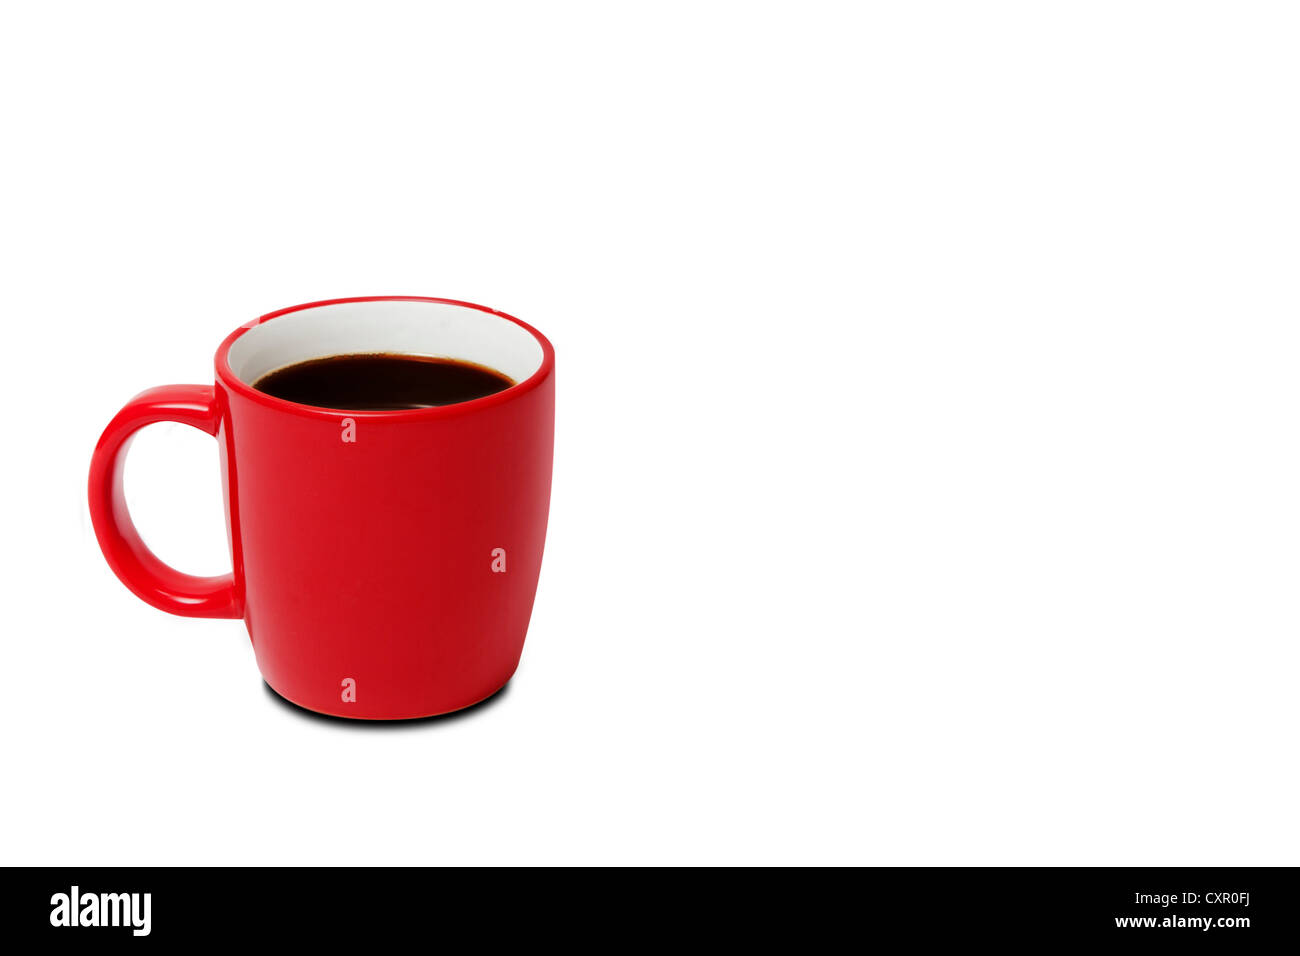 Red cup of coffee - Stock Image